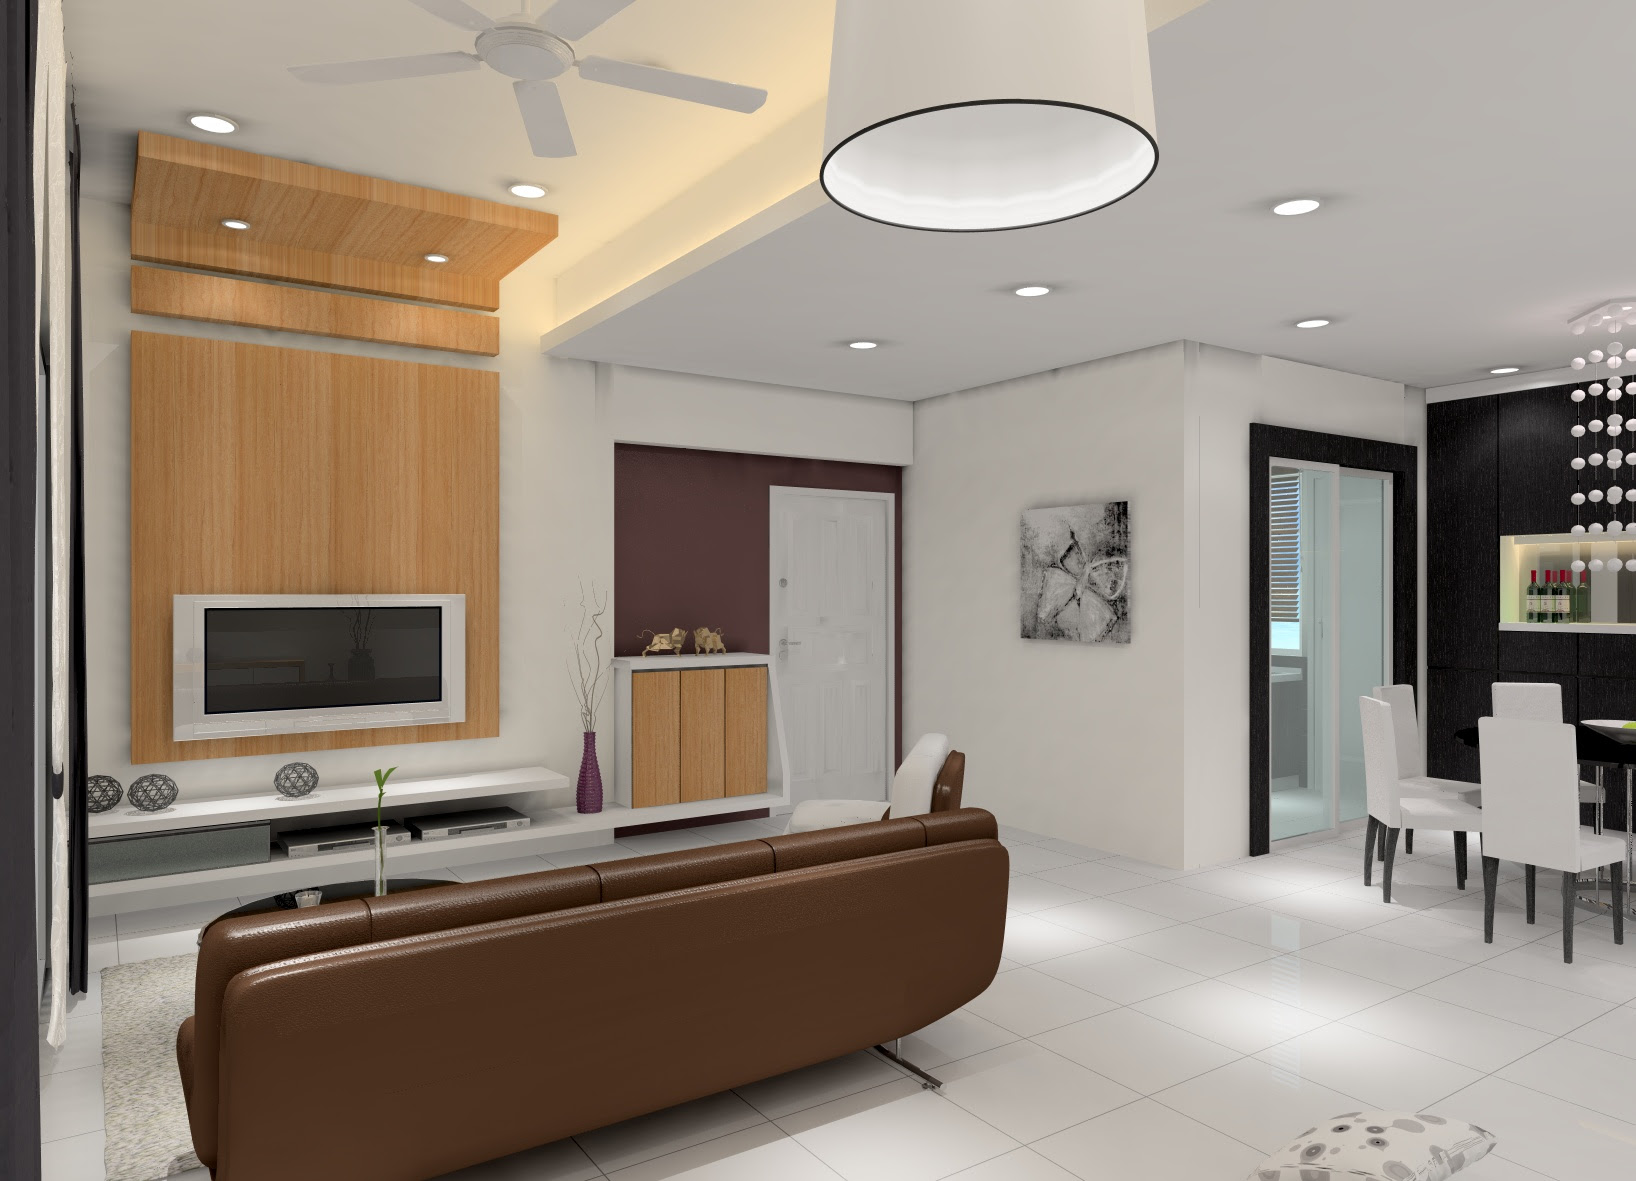 Interior Design Malaysia l Expert Interior Design Renovation Company l YK - Malaysia Interior Design Retail Interior Design MALAYSIA INTERIORDESIGN DESIGNERS HOME